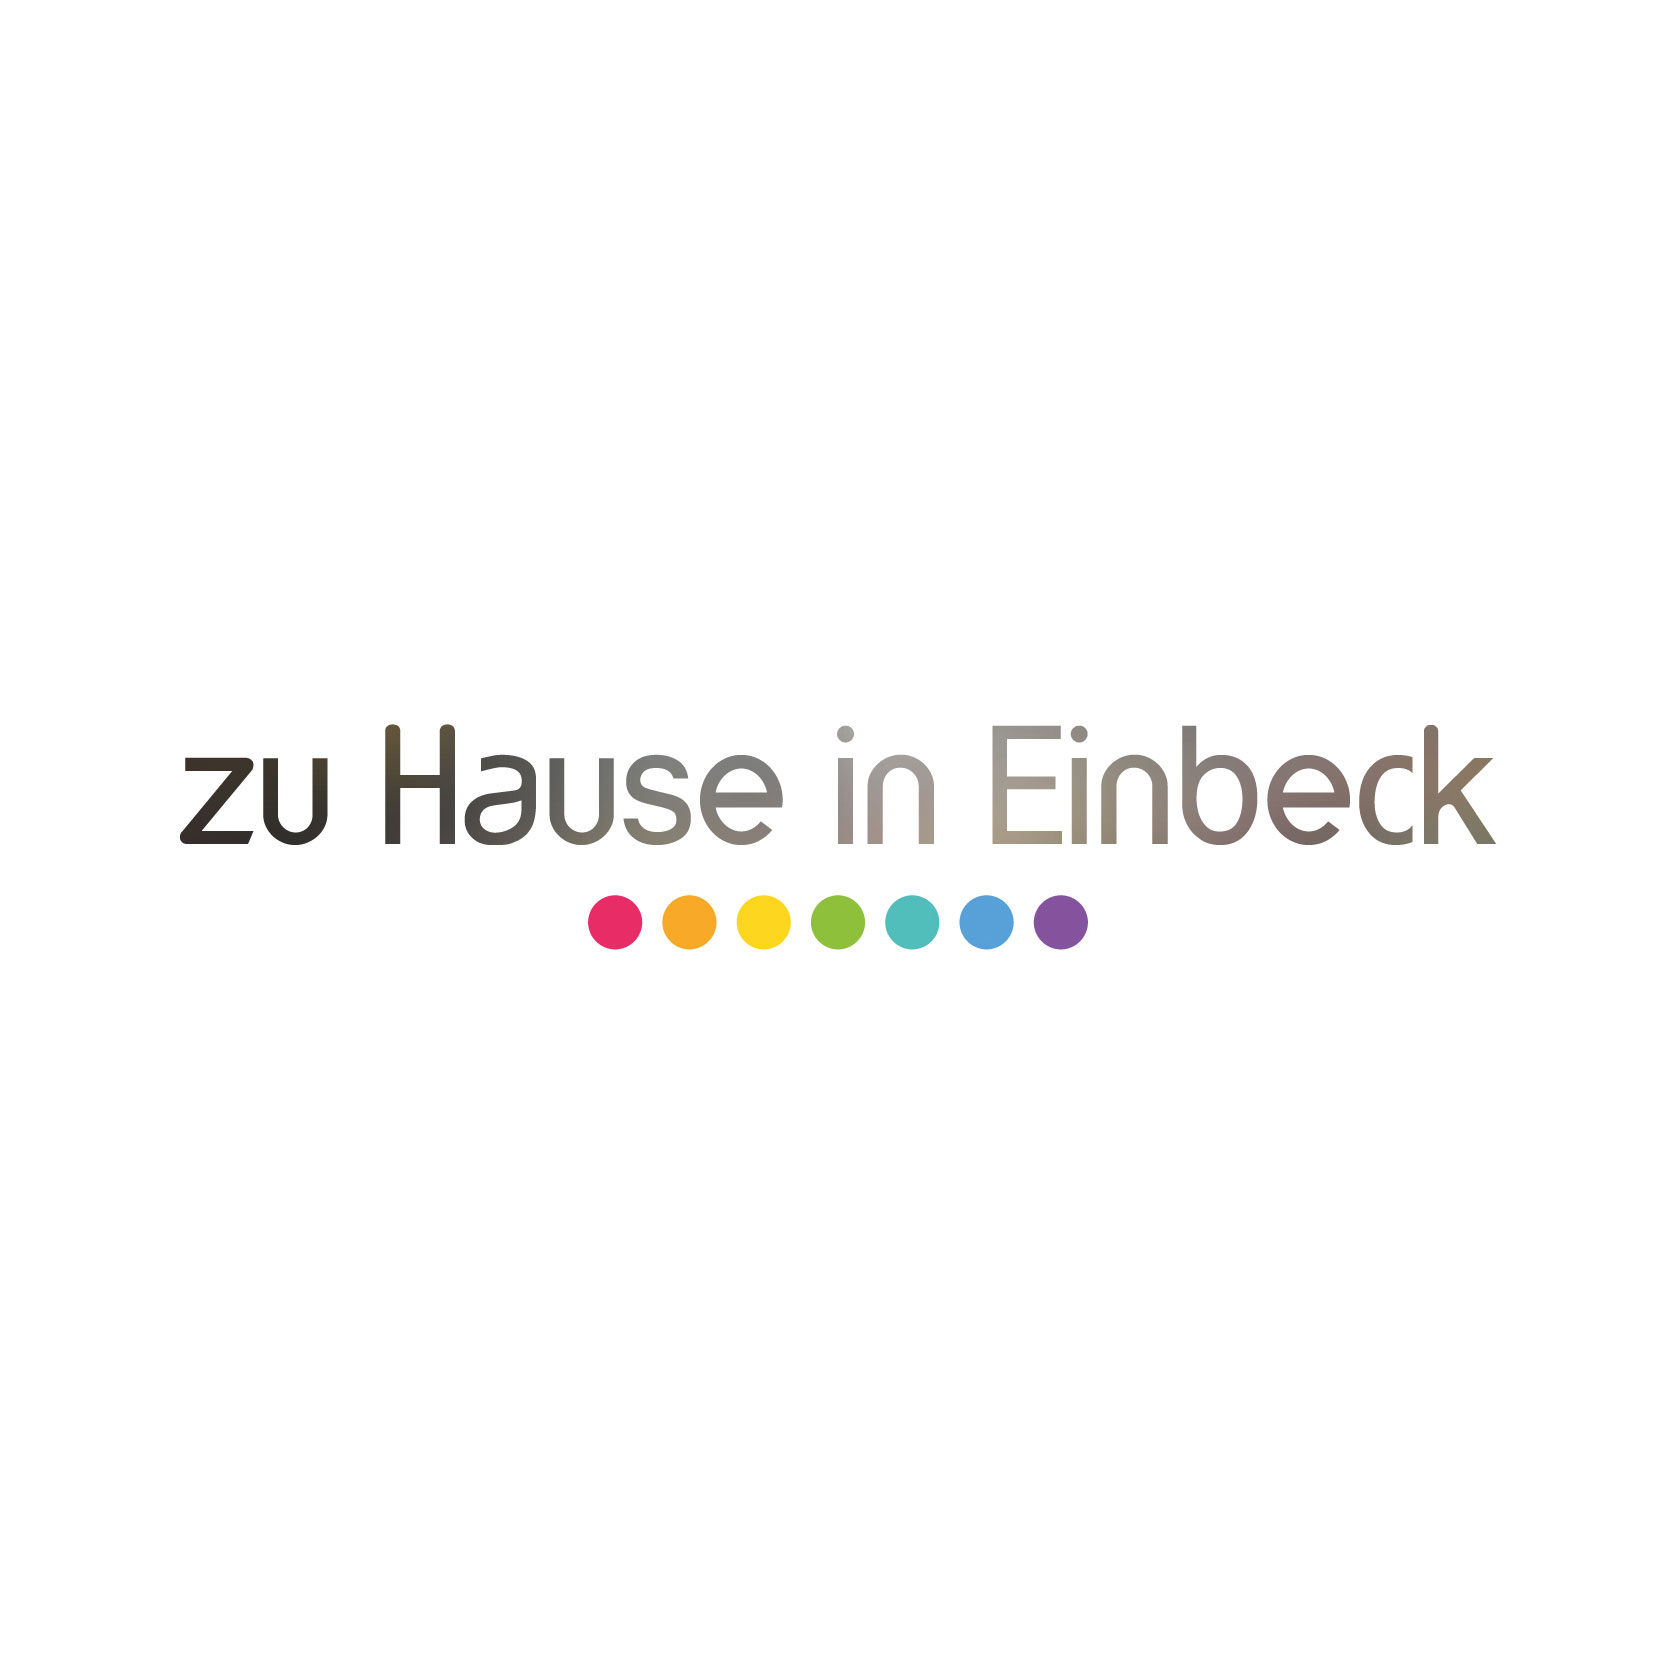 EINBECK MARKETING GmbH